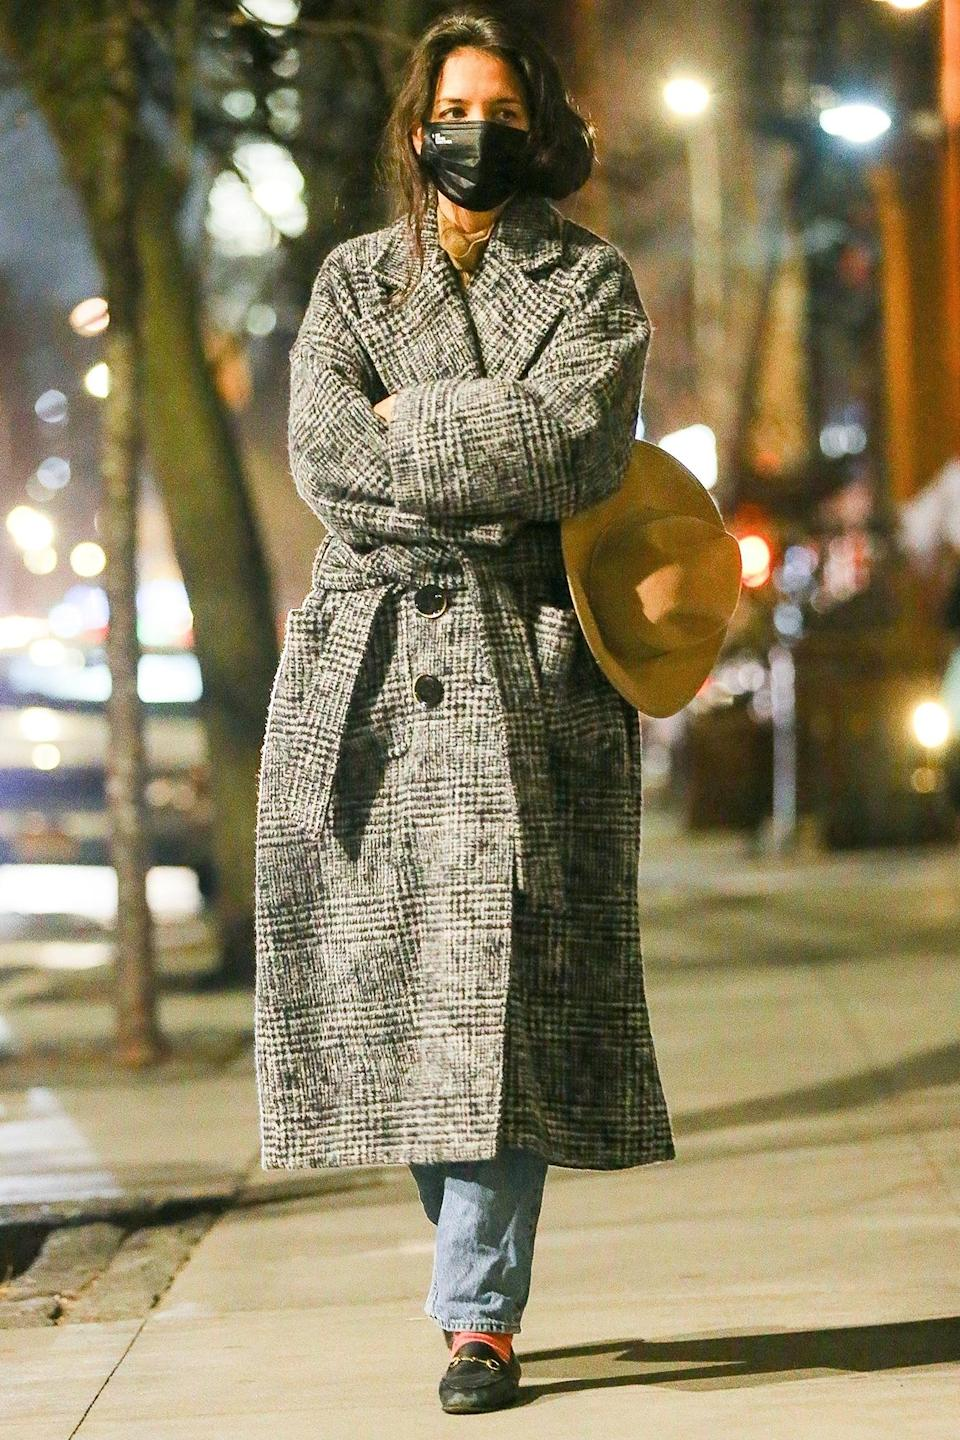 <p>Katie Holmes looked stylish as she kept warm during an evening stroll in New York City.</p>